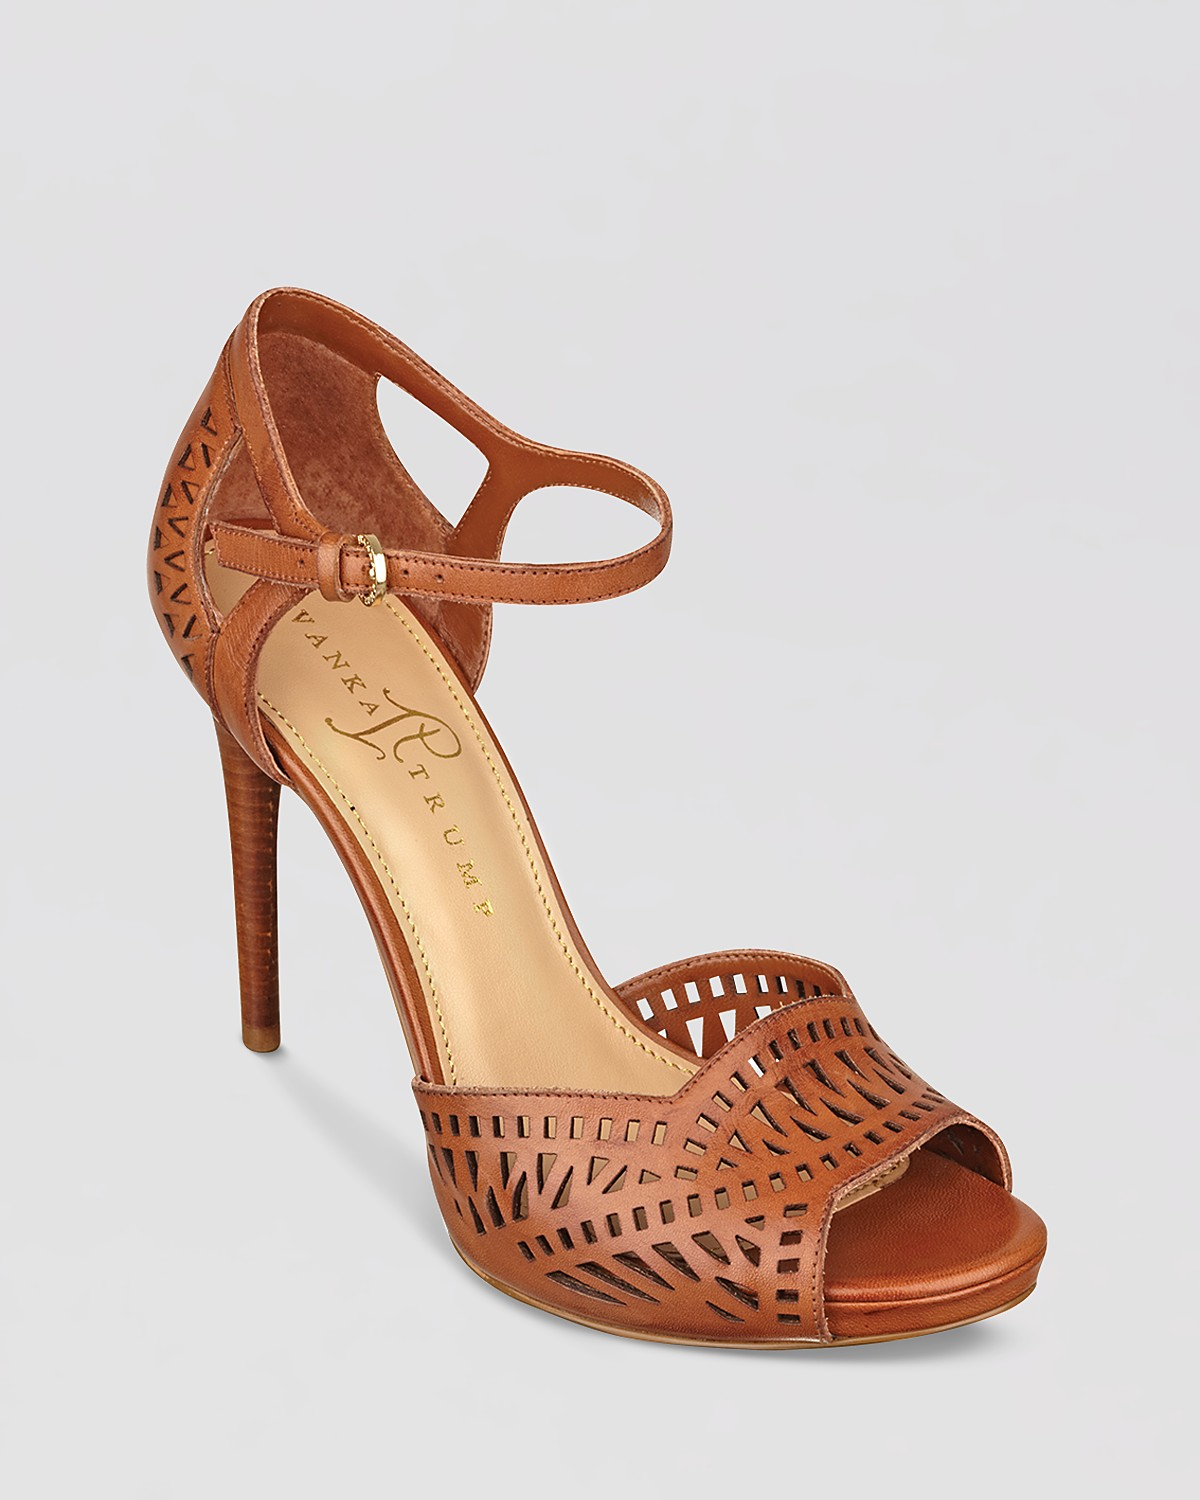 IVANKA TRUMP Ankle Strap Pumps - Ariell High Heel | Bloomingdale's